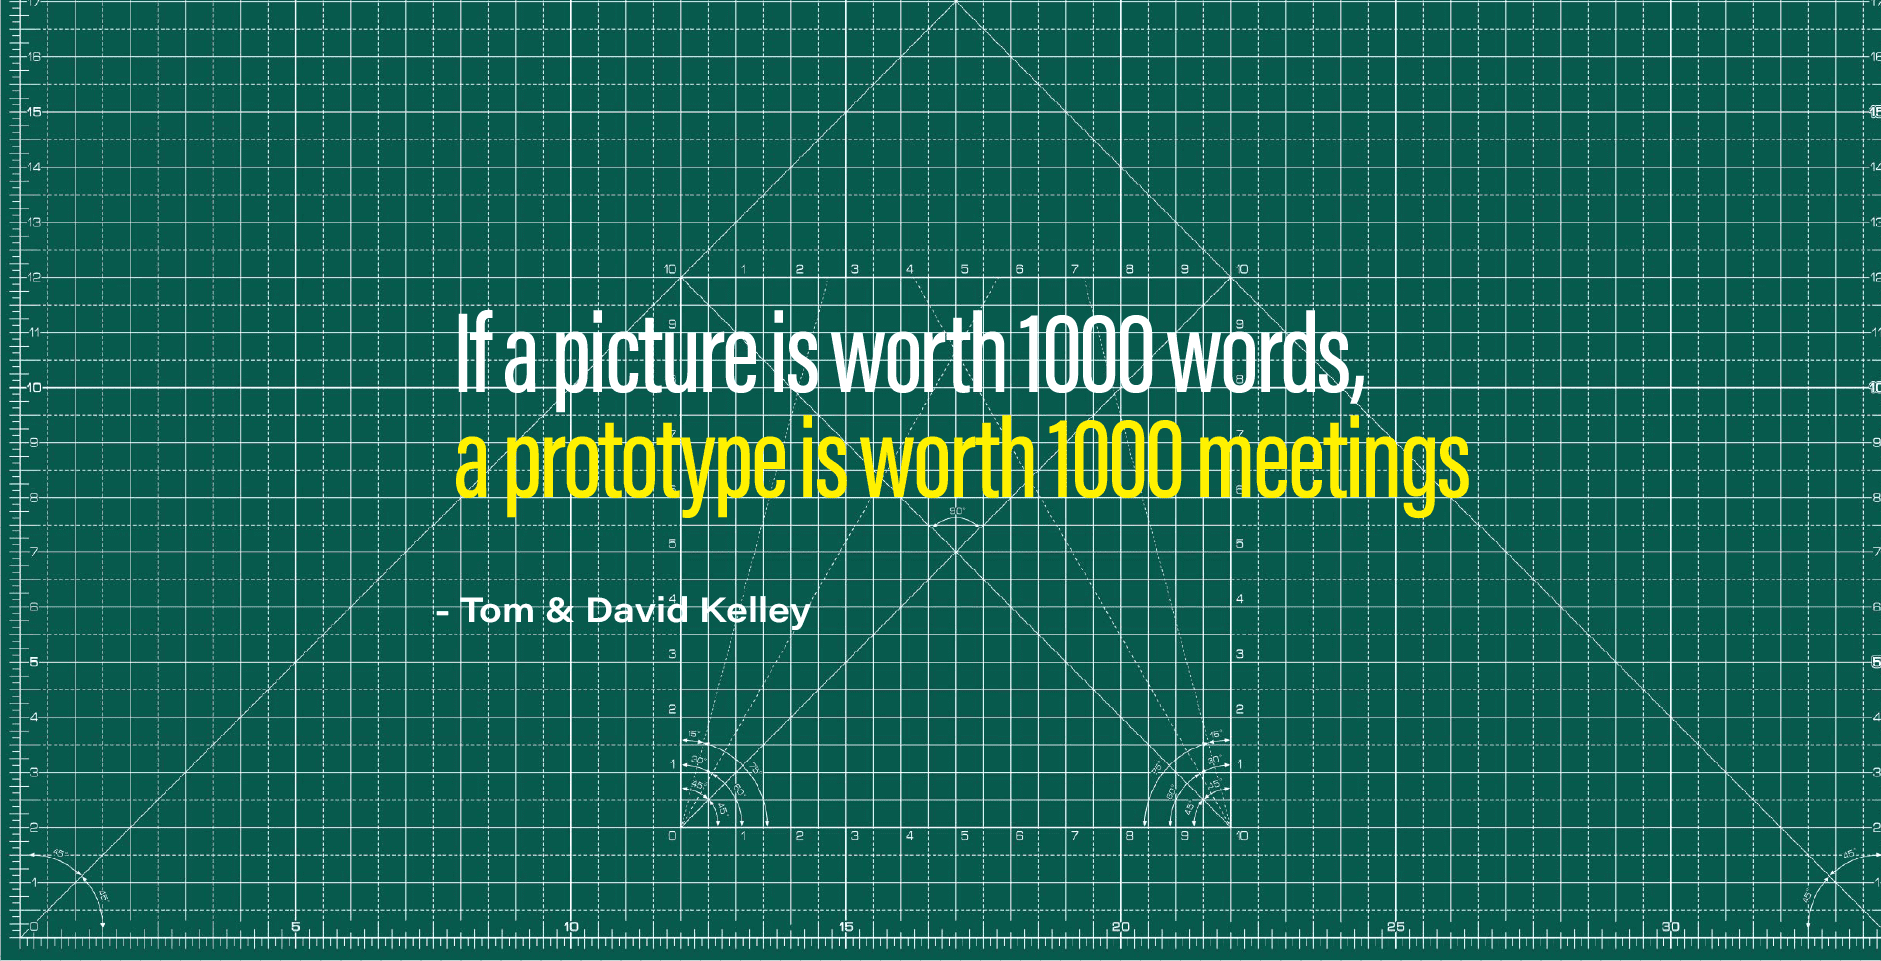 Prototype (tangible ideating) skill/tool